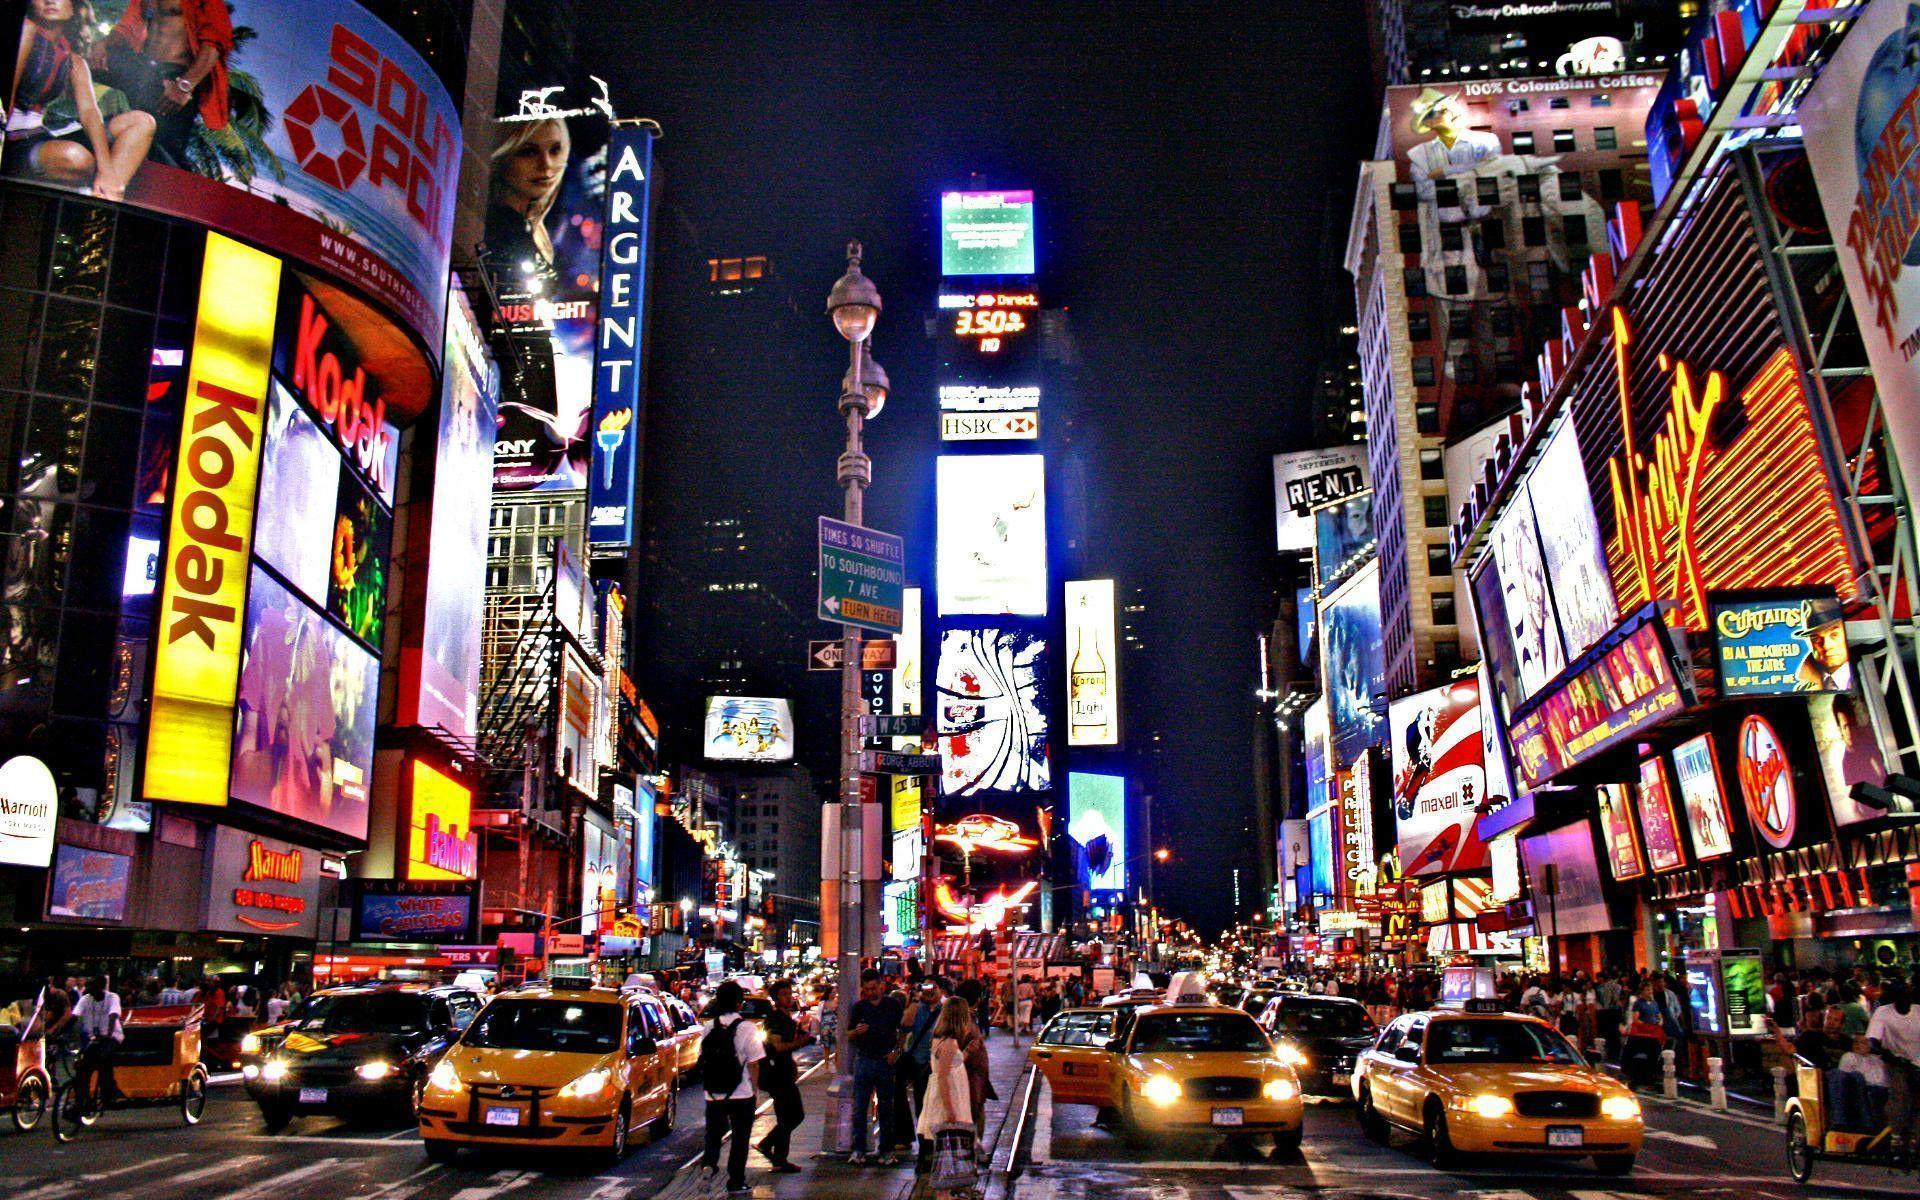 new york wallpapers, new york background images